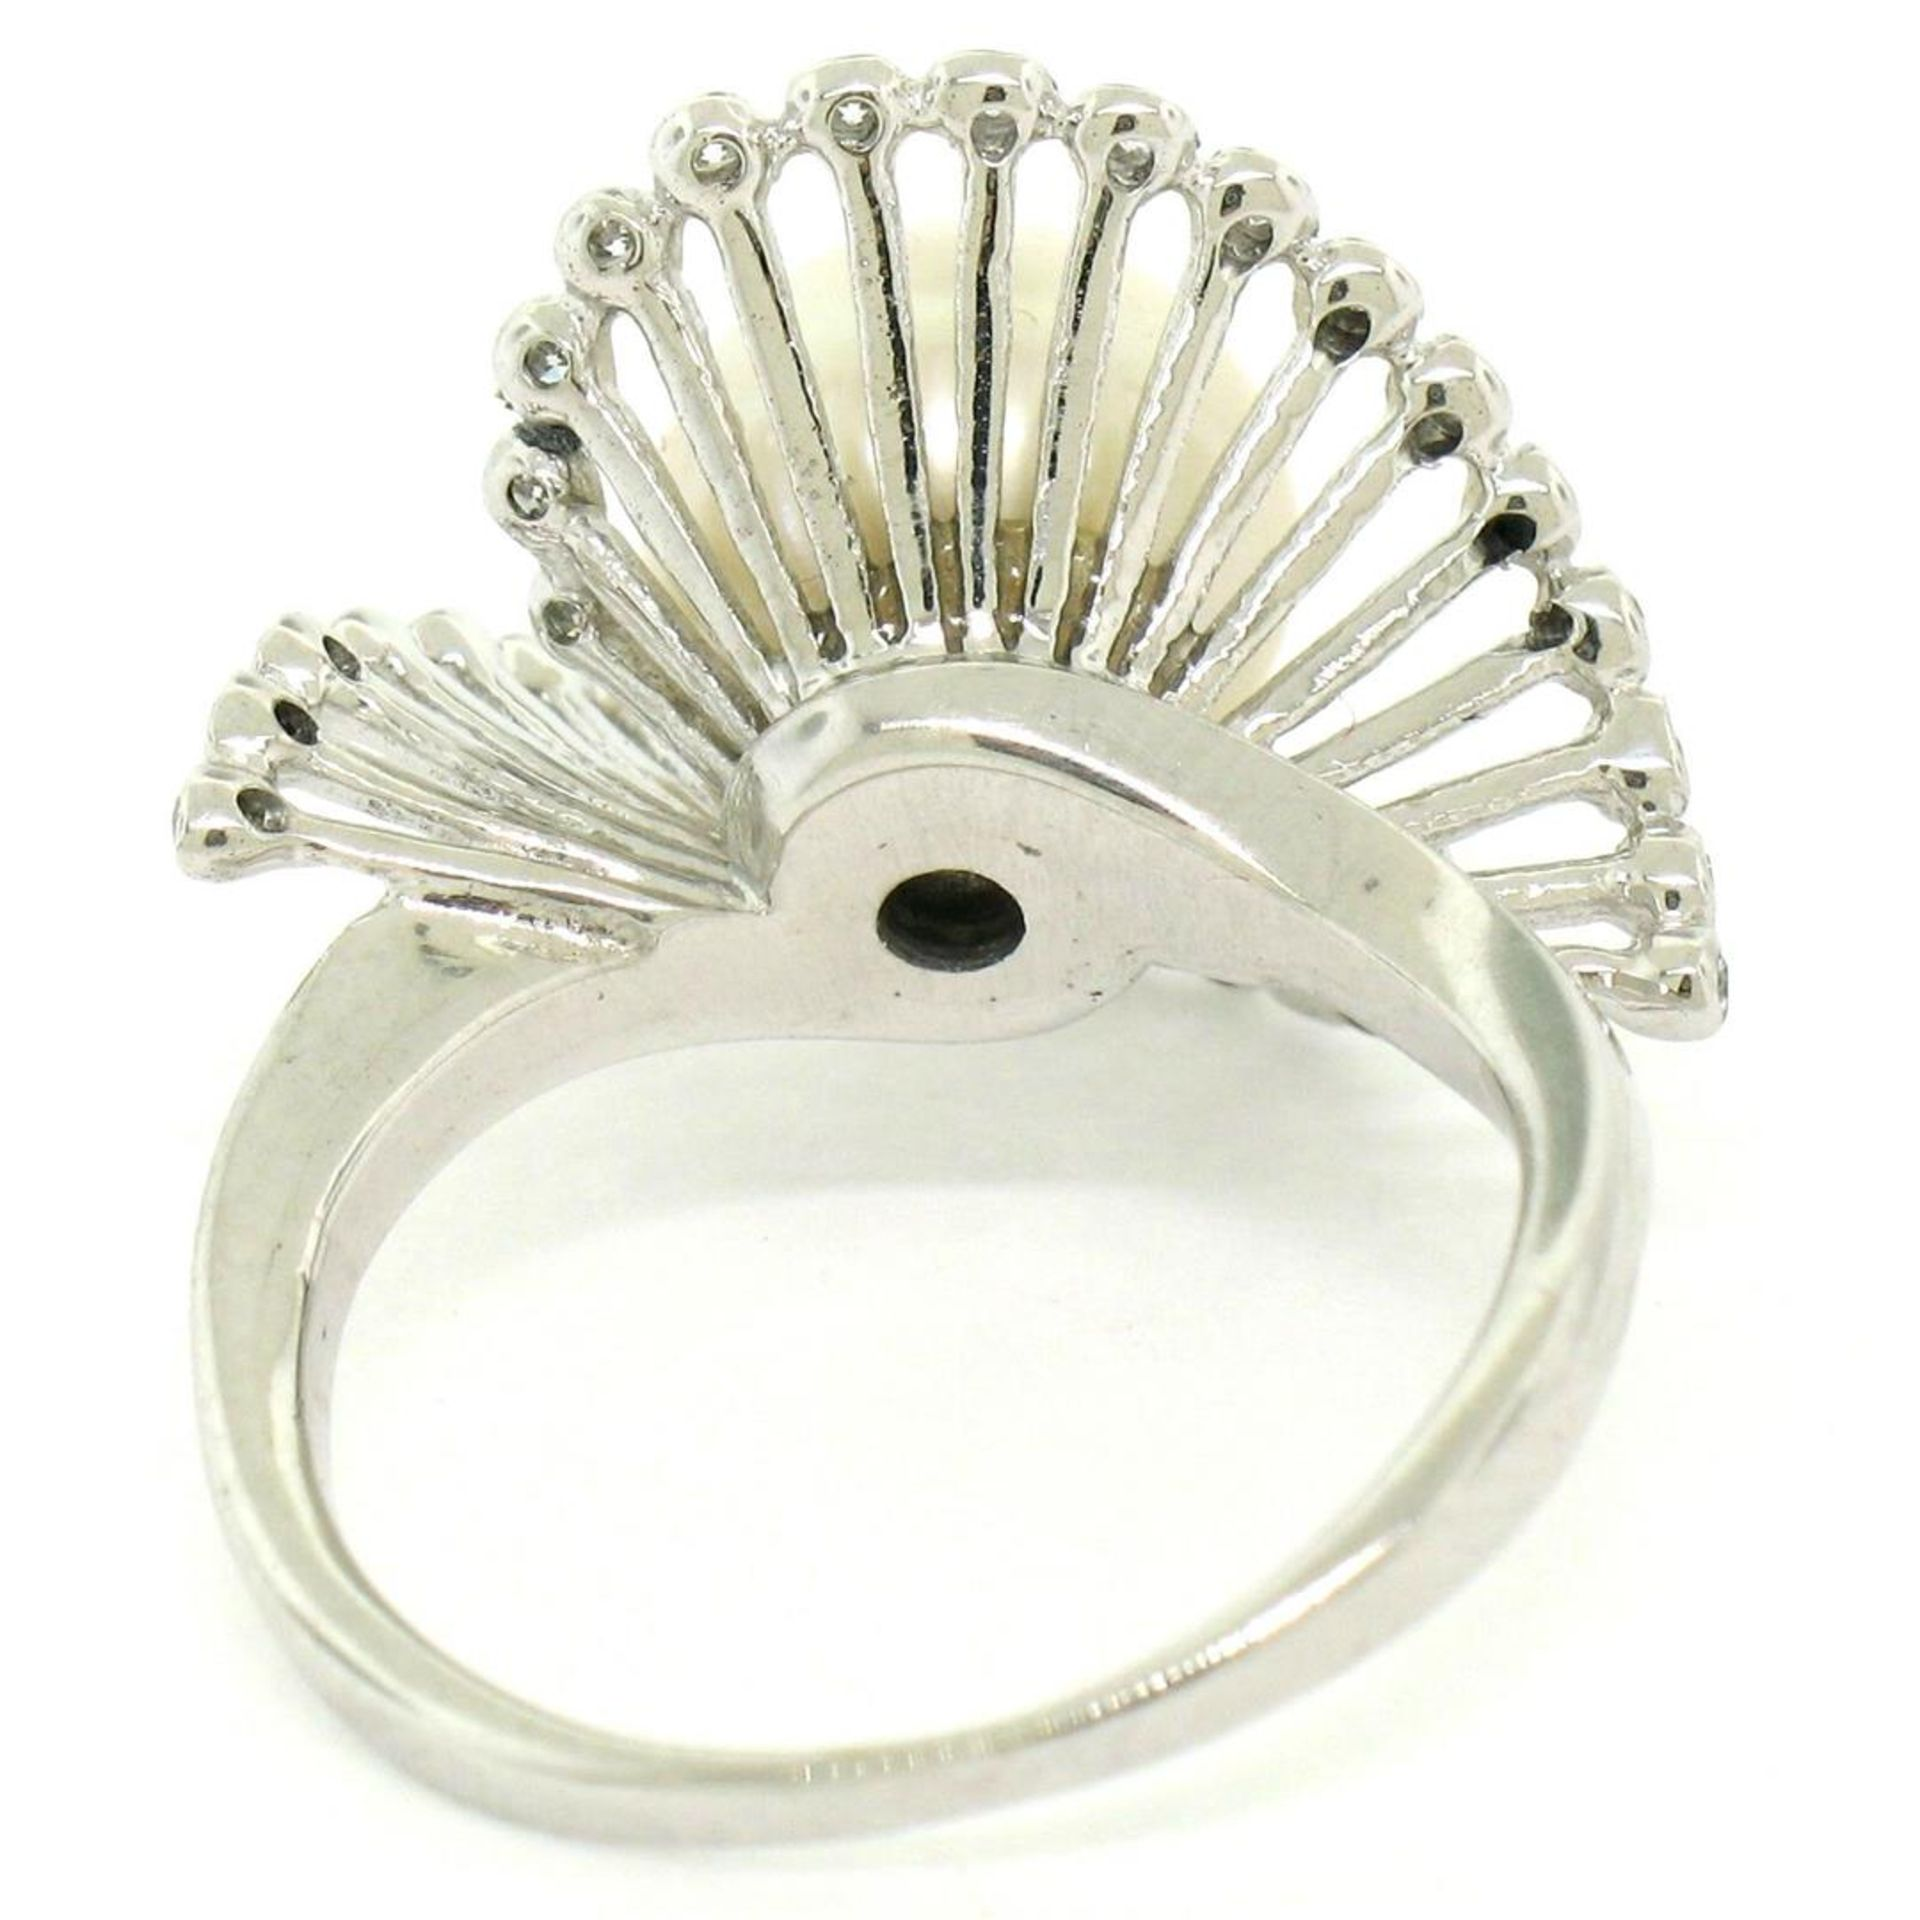 Vintage 14K White Gold 8.5mm Pearl Bezel Diamond 2 Wave Bypass Cocktail Ring - Image 6 of 8